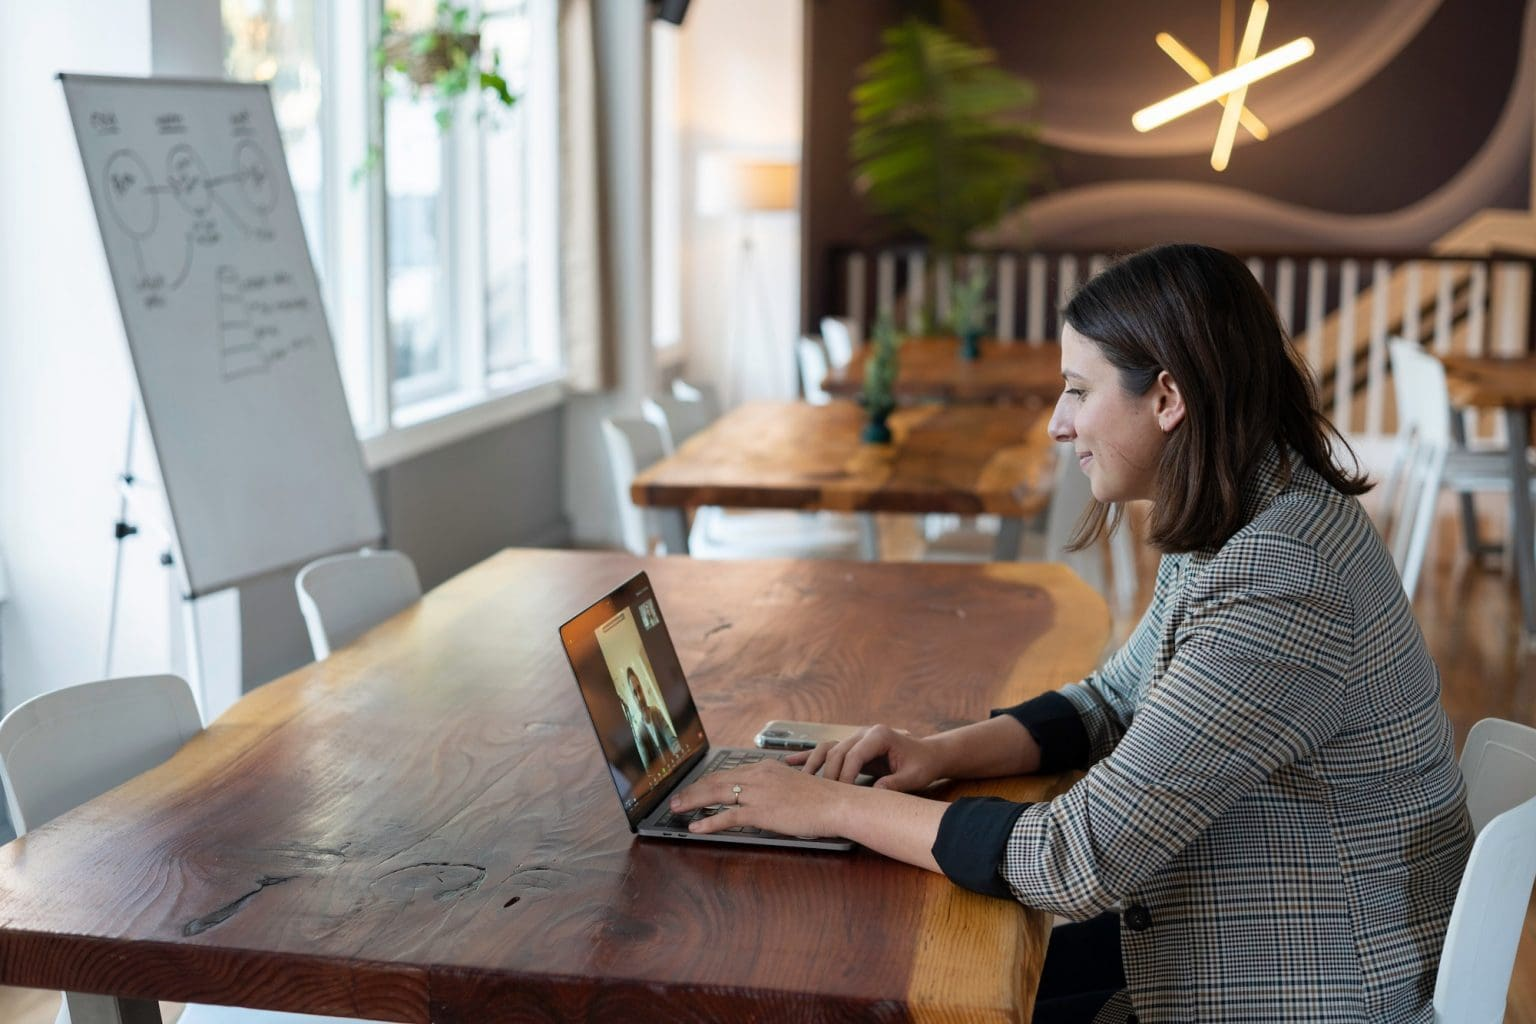 This discounted web conference solution will help streamline your business